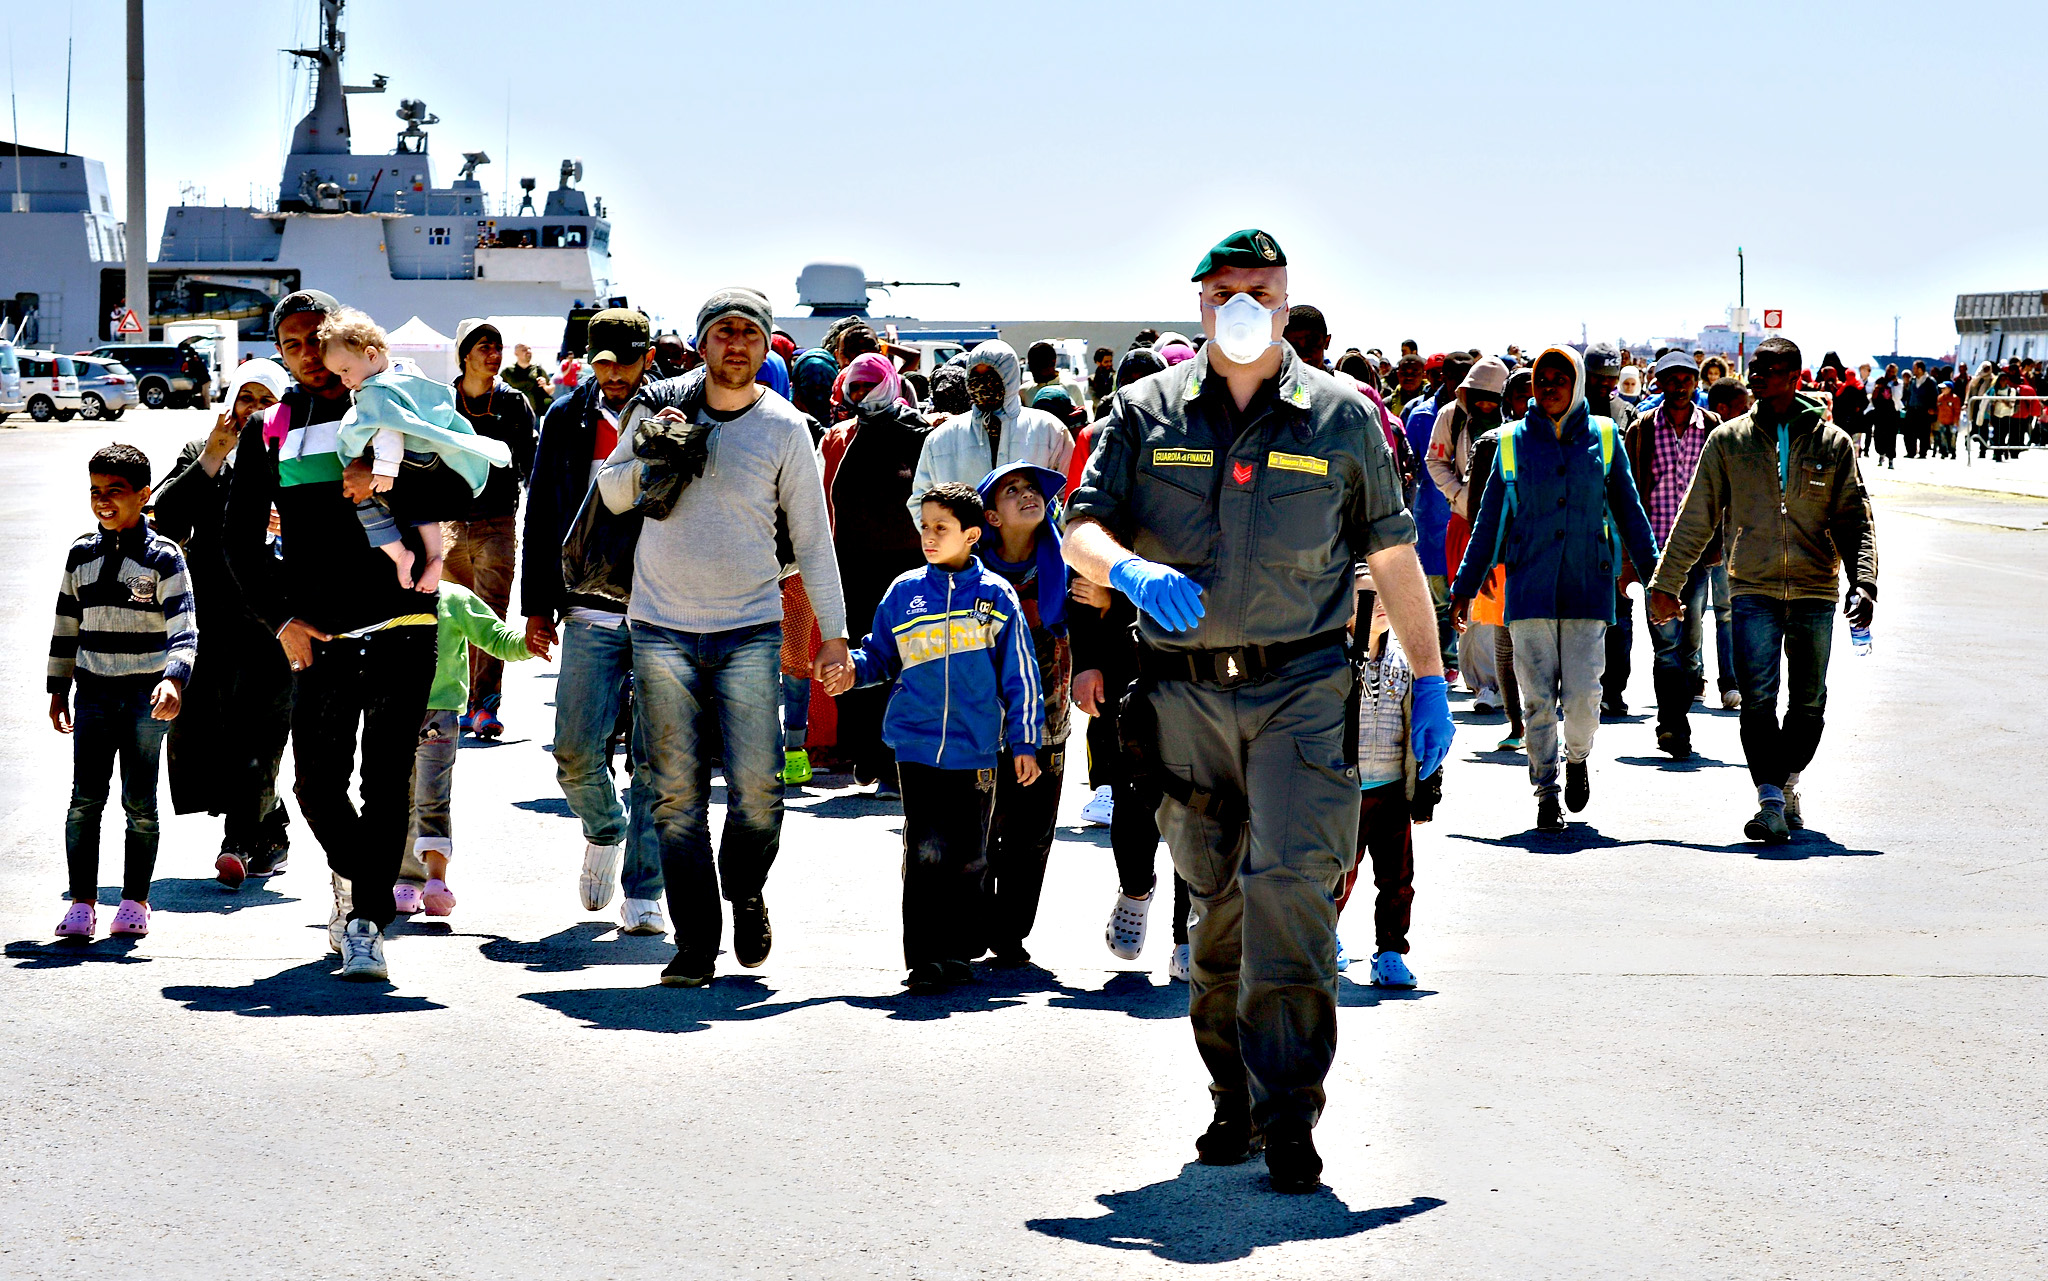 Rescued migrants walk along the quayside after disembarking from the Italian Navy vessel Bettica in the Sicilian harbour of Augusta on Wednesday. European governments came under increasing pressure to tackle the Mediterranean's migrant crisis ahead of an emergency summit, as harrowing details emerged of the fate of hundreds who died in the latest tragedy